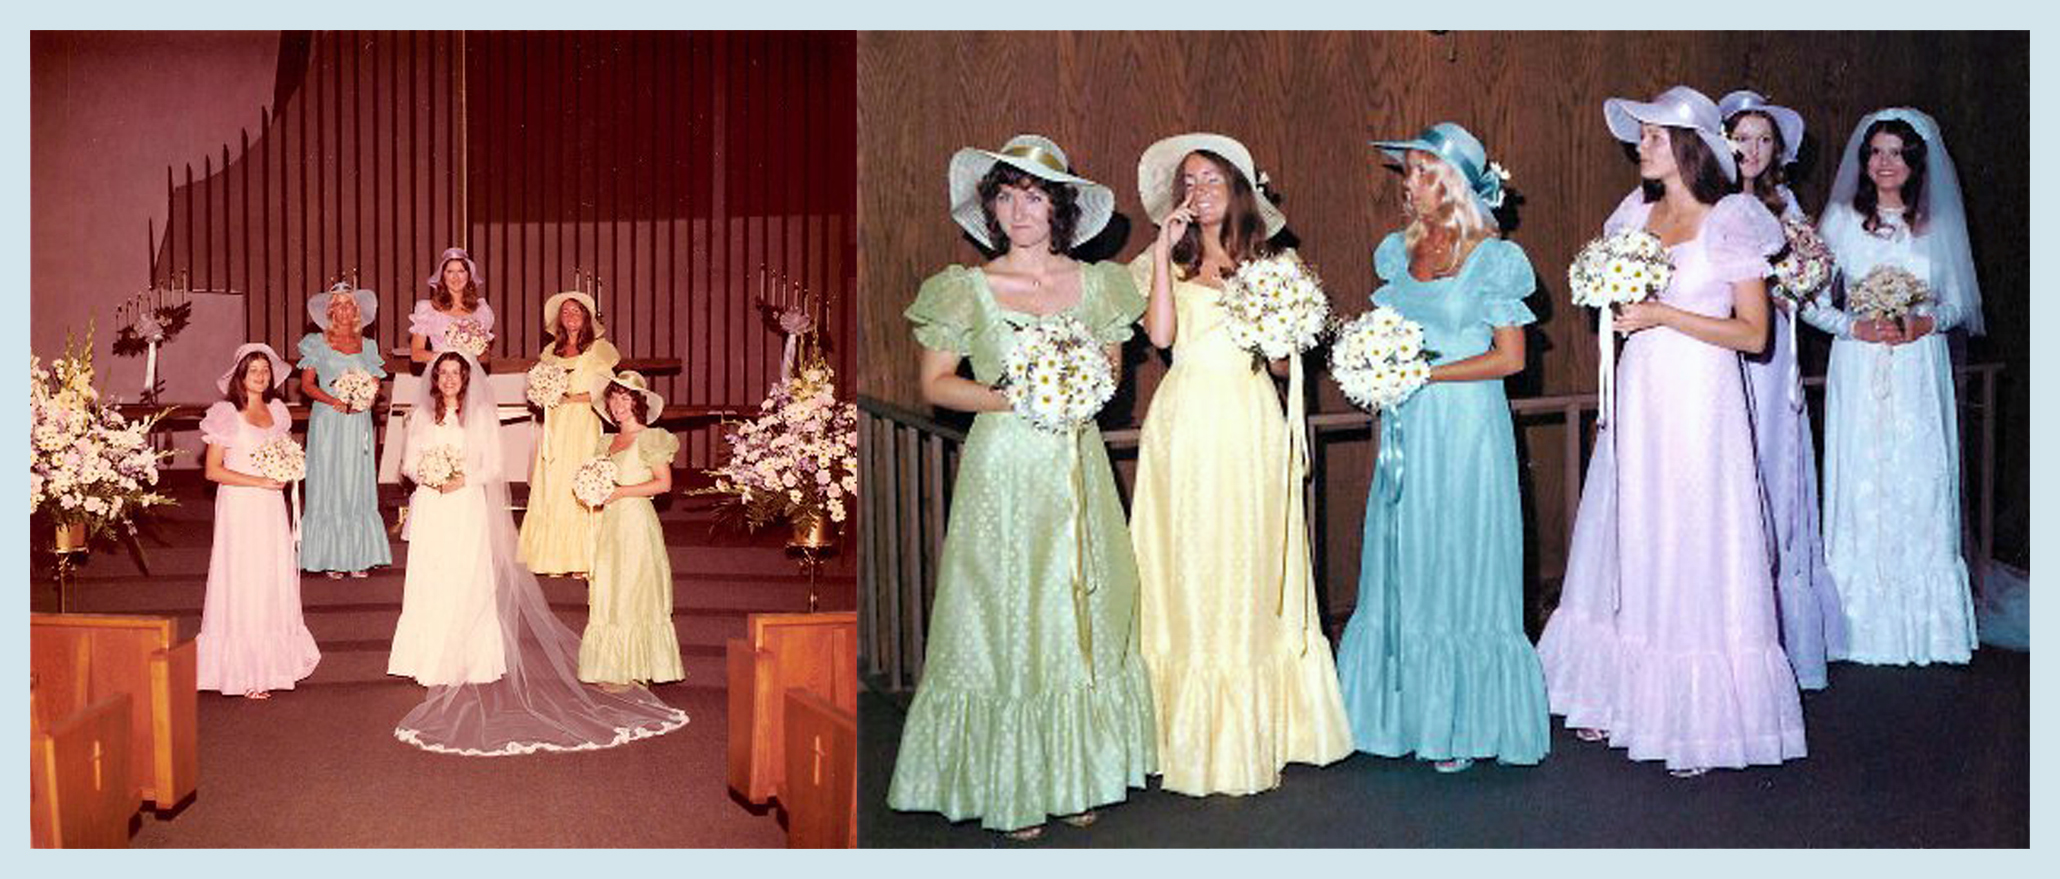 The dresses I forced my bridesmaids to wear (l to r - Joyce Knutsen Salter, Sandy Walker Hegwood, Janet Knusten McCann, Mary Bennett deNove, Denise Gail Williams) Picture on the left